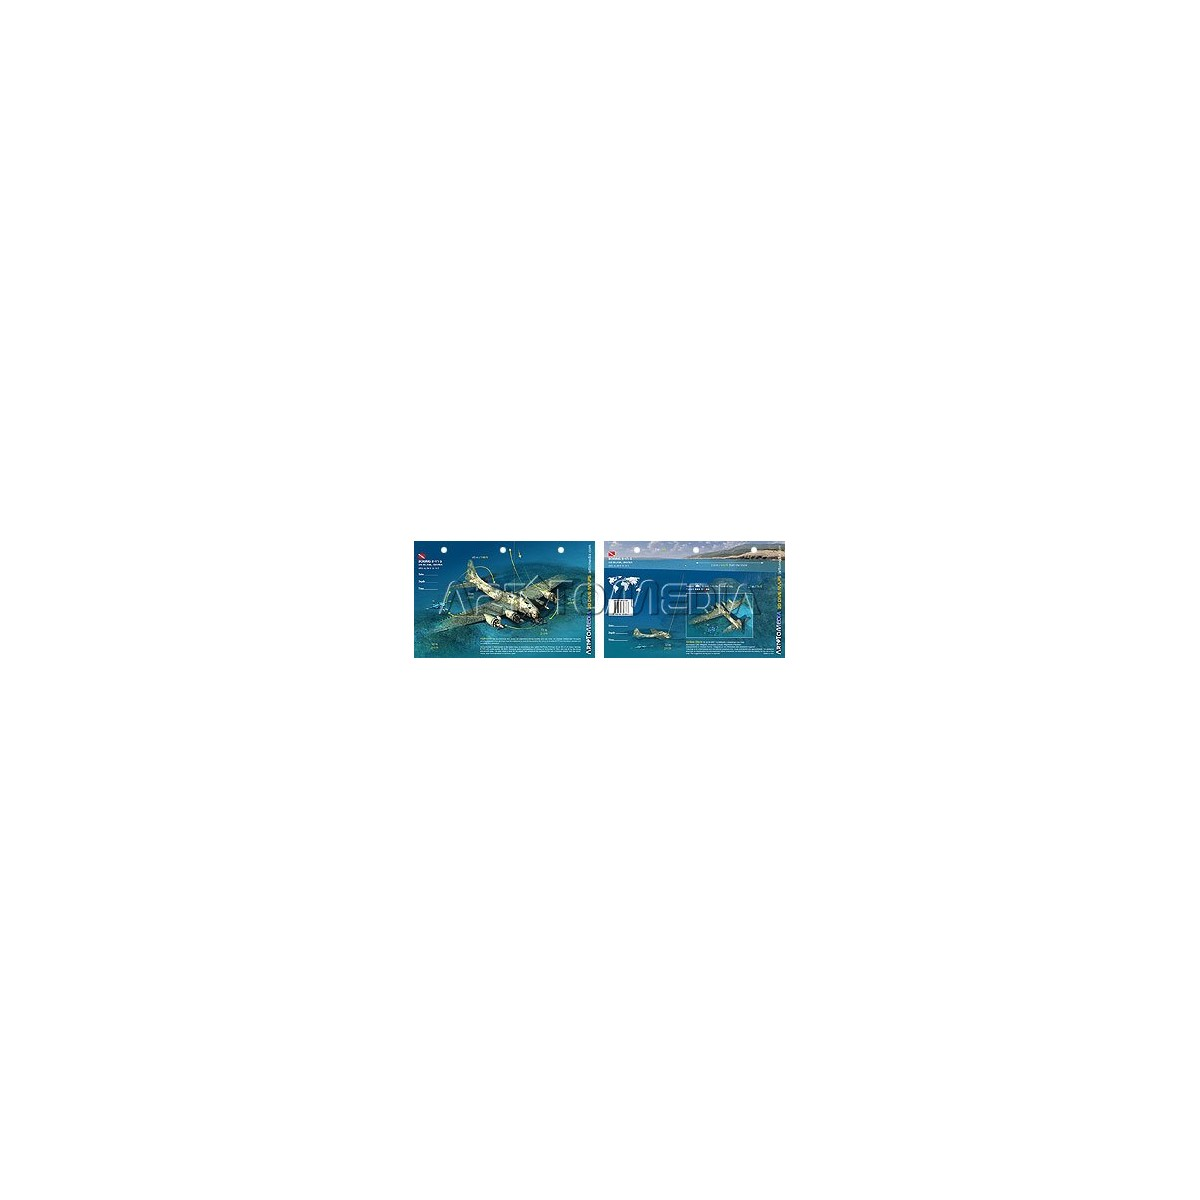 Boeing B-17 G in Croatia (8.5 x 5.5 Inches) (21.6 x 15cm) - New Art to Media Underwater Waterproof 3D Dive Site Map